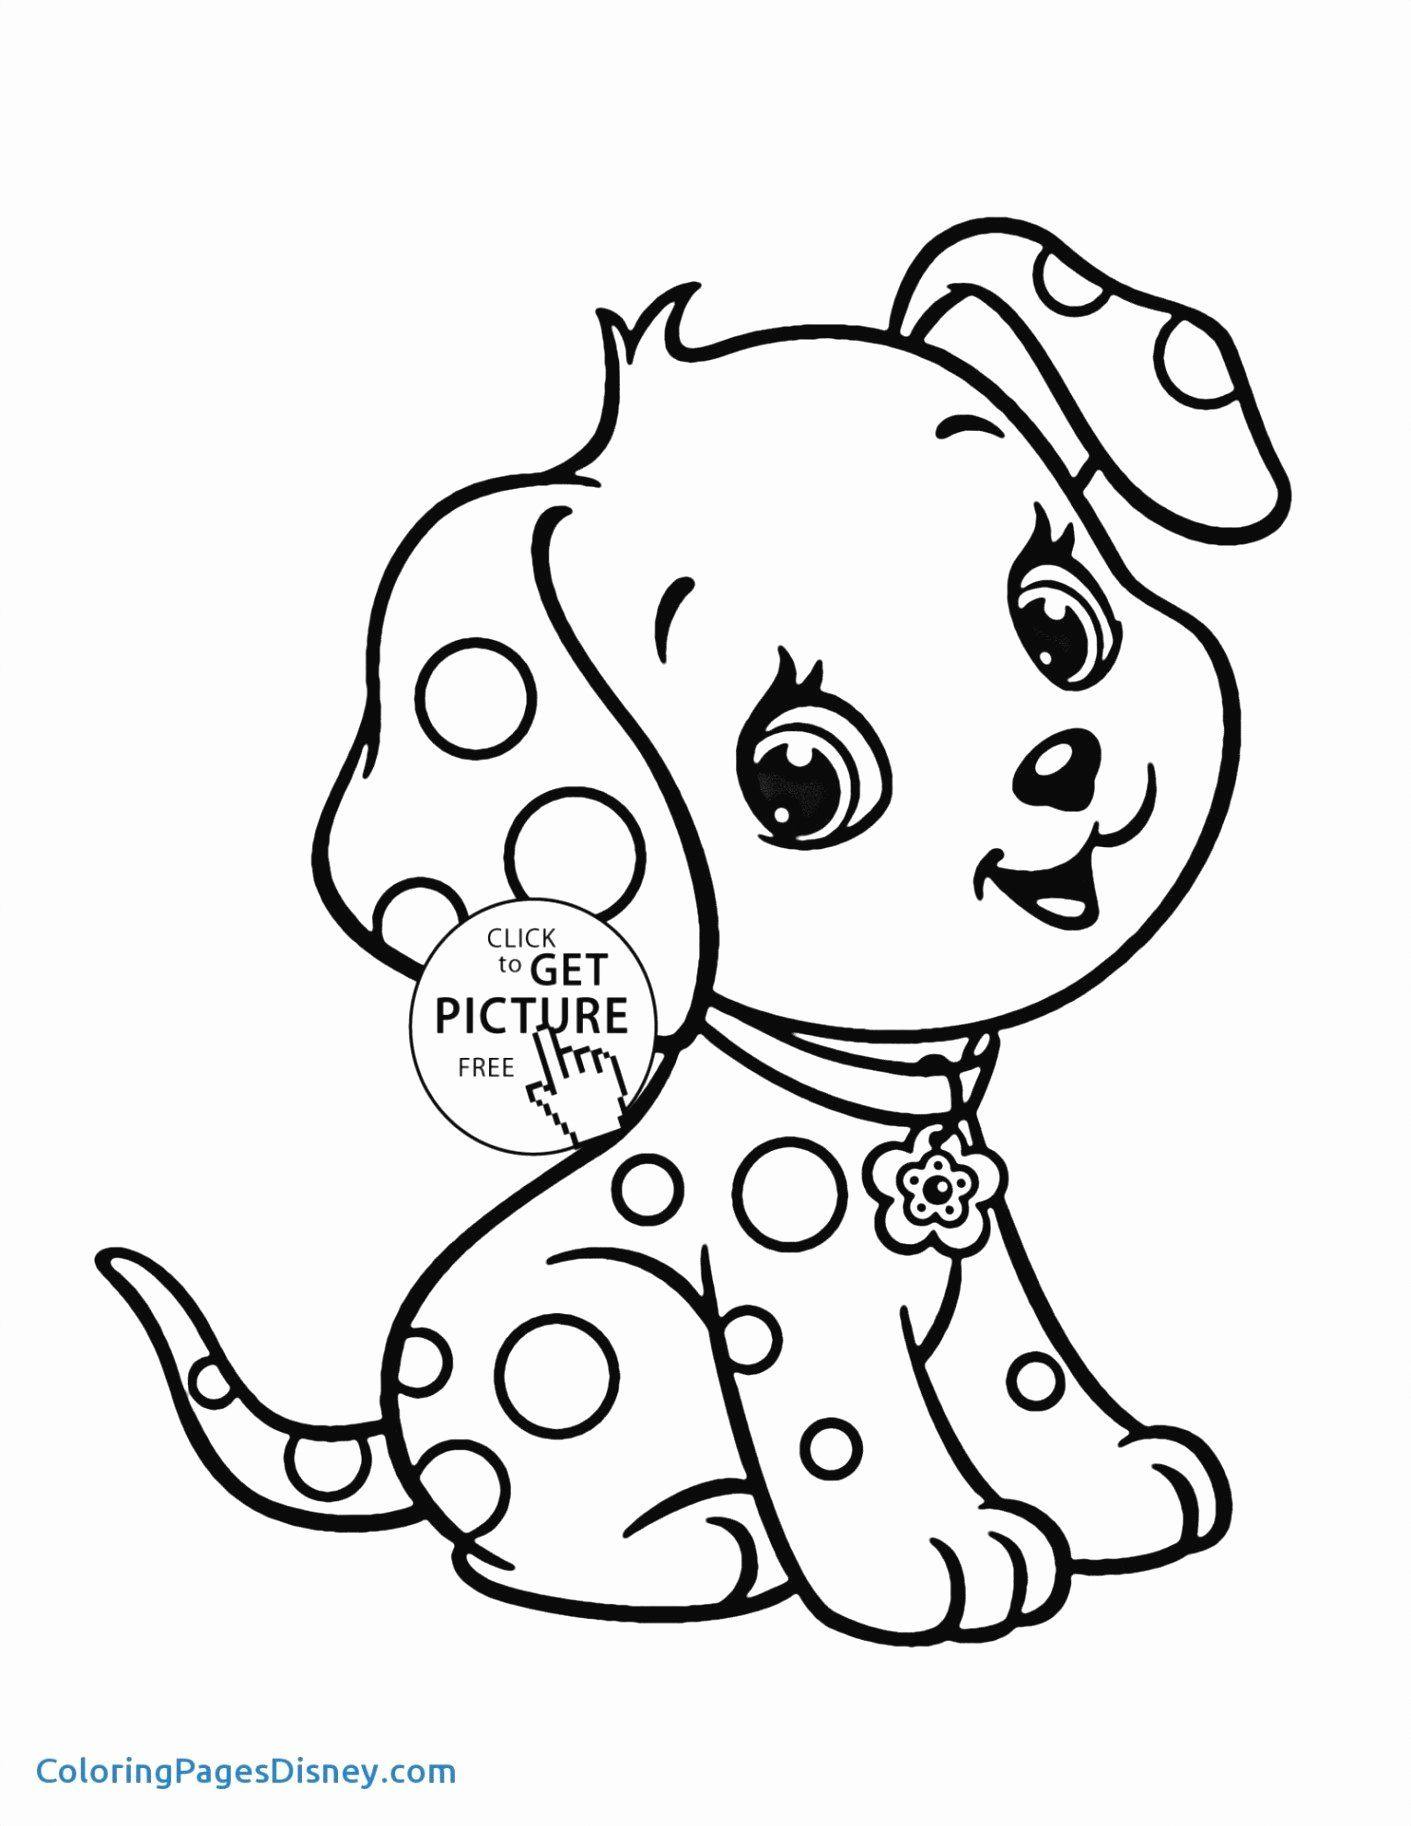 Mickey Mouse Easter Coloring Pages Inspirational Easter Coloring Pages Disney Beauti Unicorn Coloring Pages Disney Princess Coloring Pages Puppy Coloring Pages